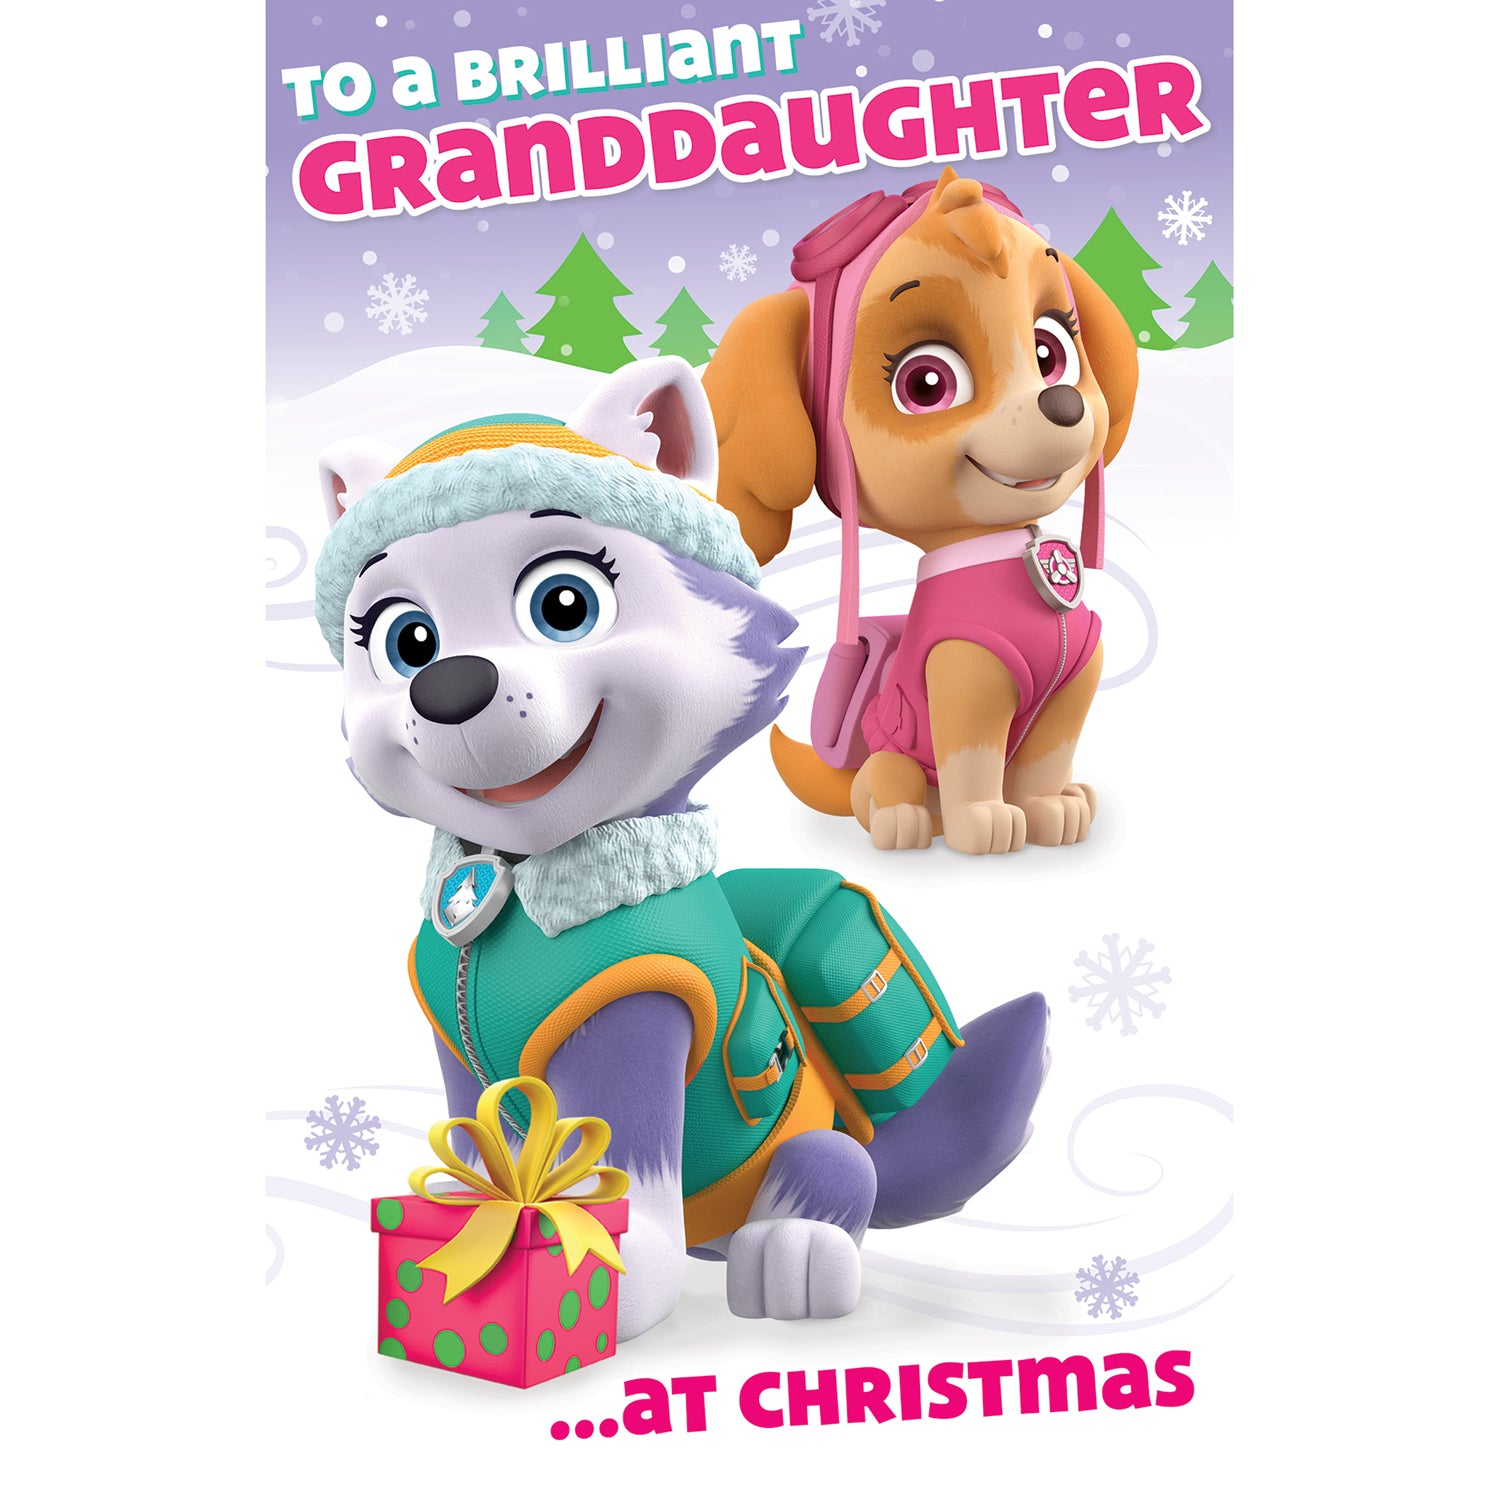 Paw Patrol Granddaughter Christmas Card